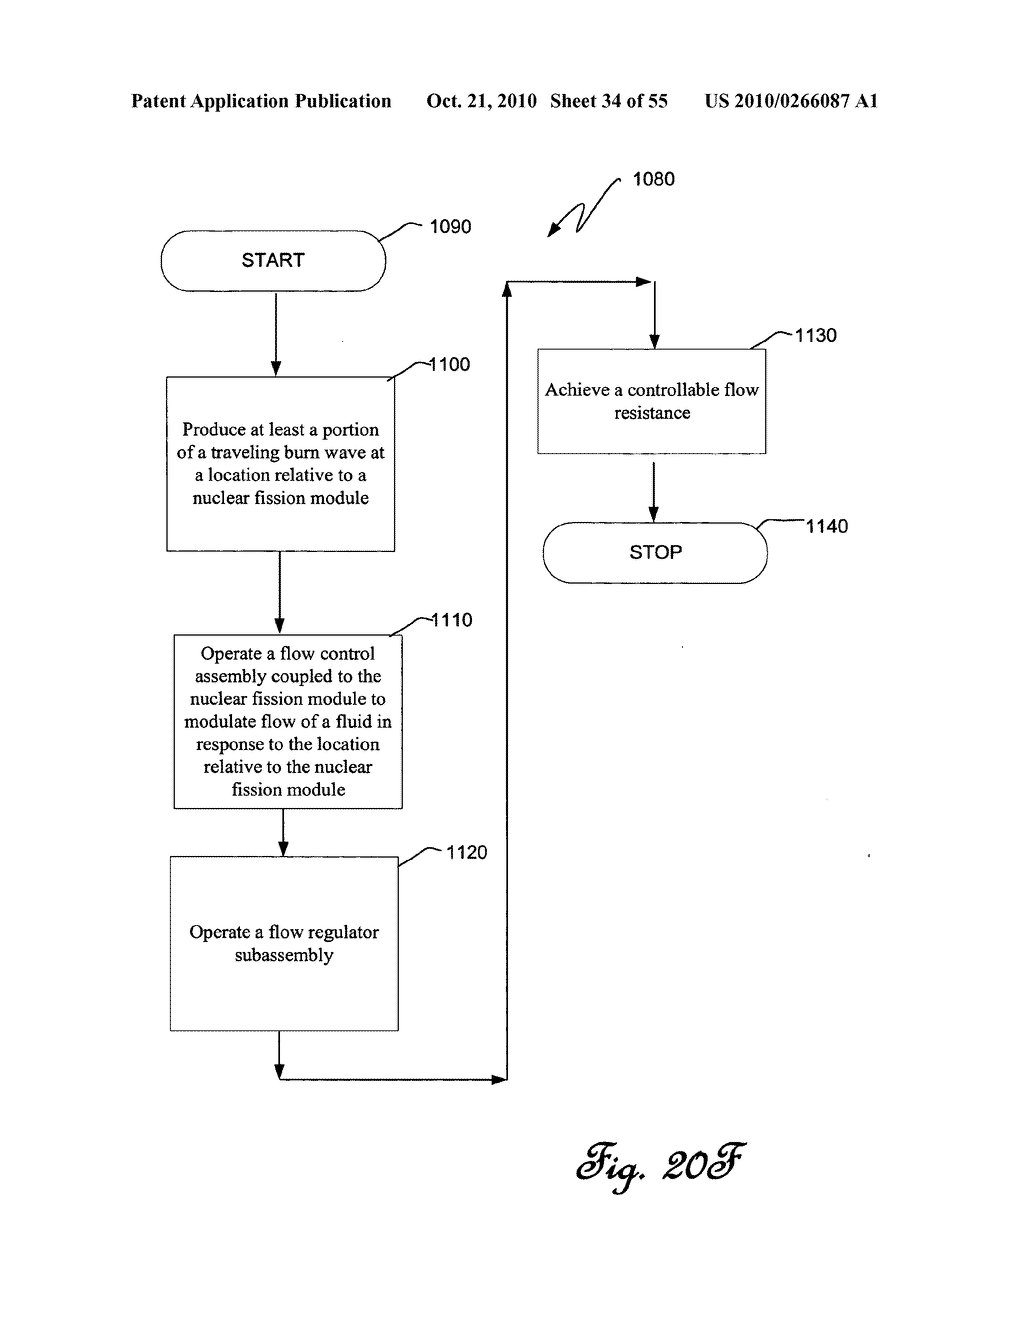 Nuclear fission reactor, flow control assembly, methods therefor and a flow control assembly system - diagram, schematic, and image 35